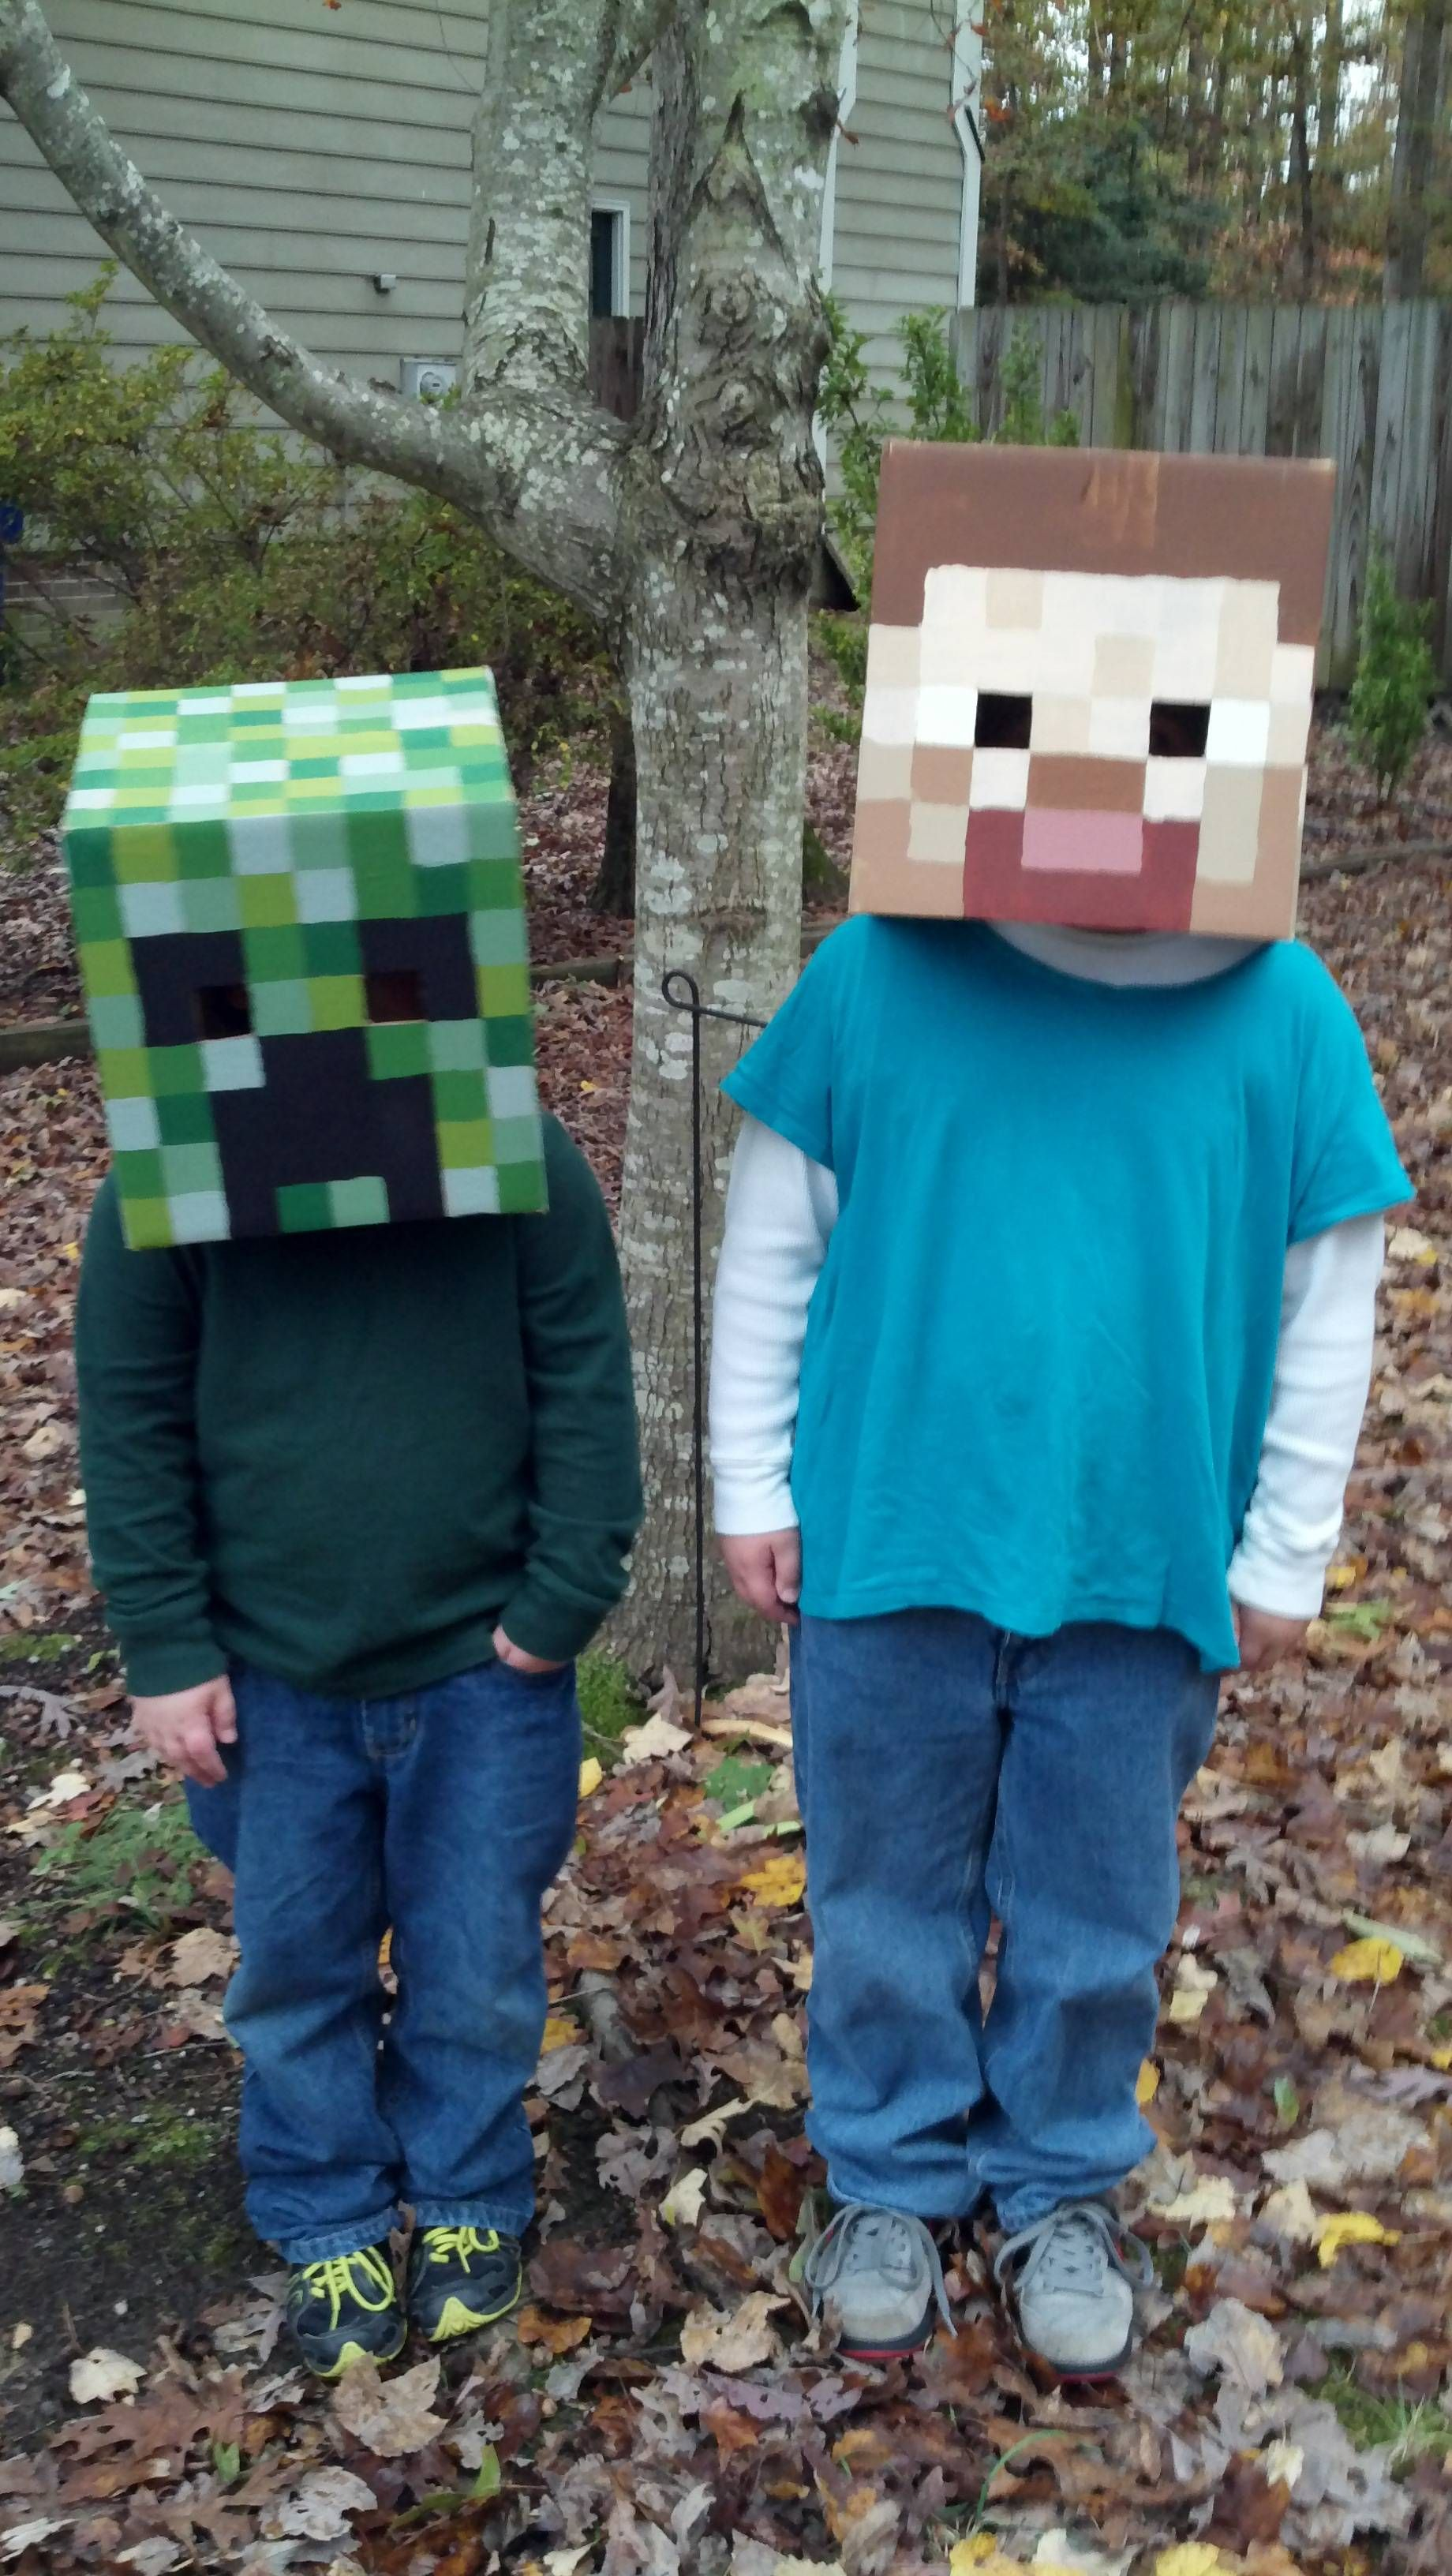 my kids' halloween costumes: creeper and steve from minecraft. in